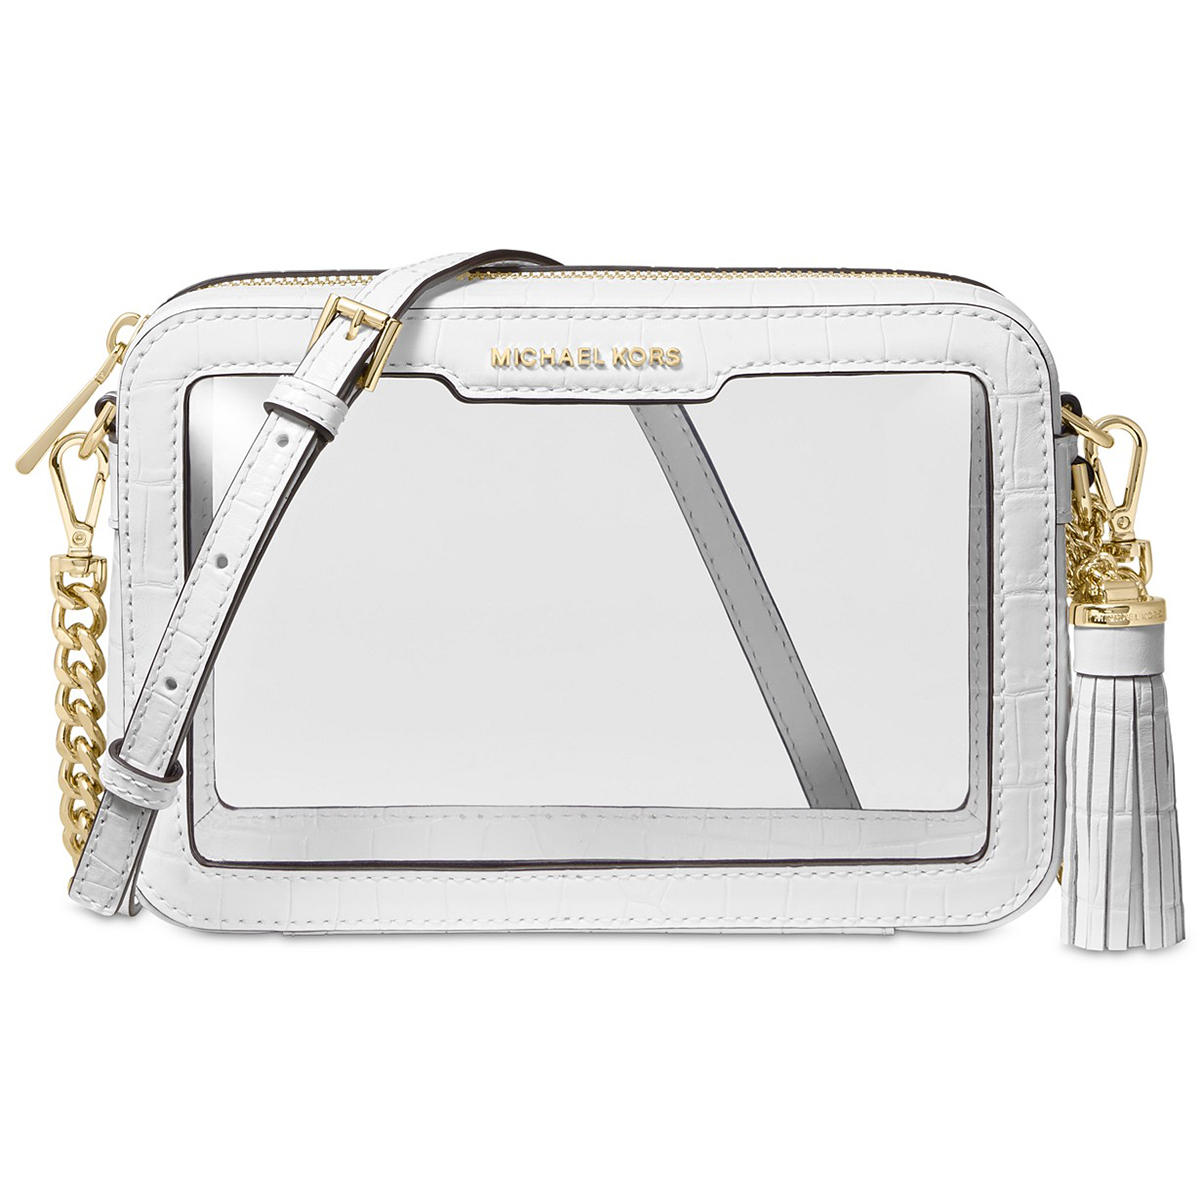 Rock the Clear Bag Trend With This Michael Kors Crossbody — Now Under $100!